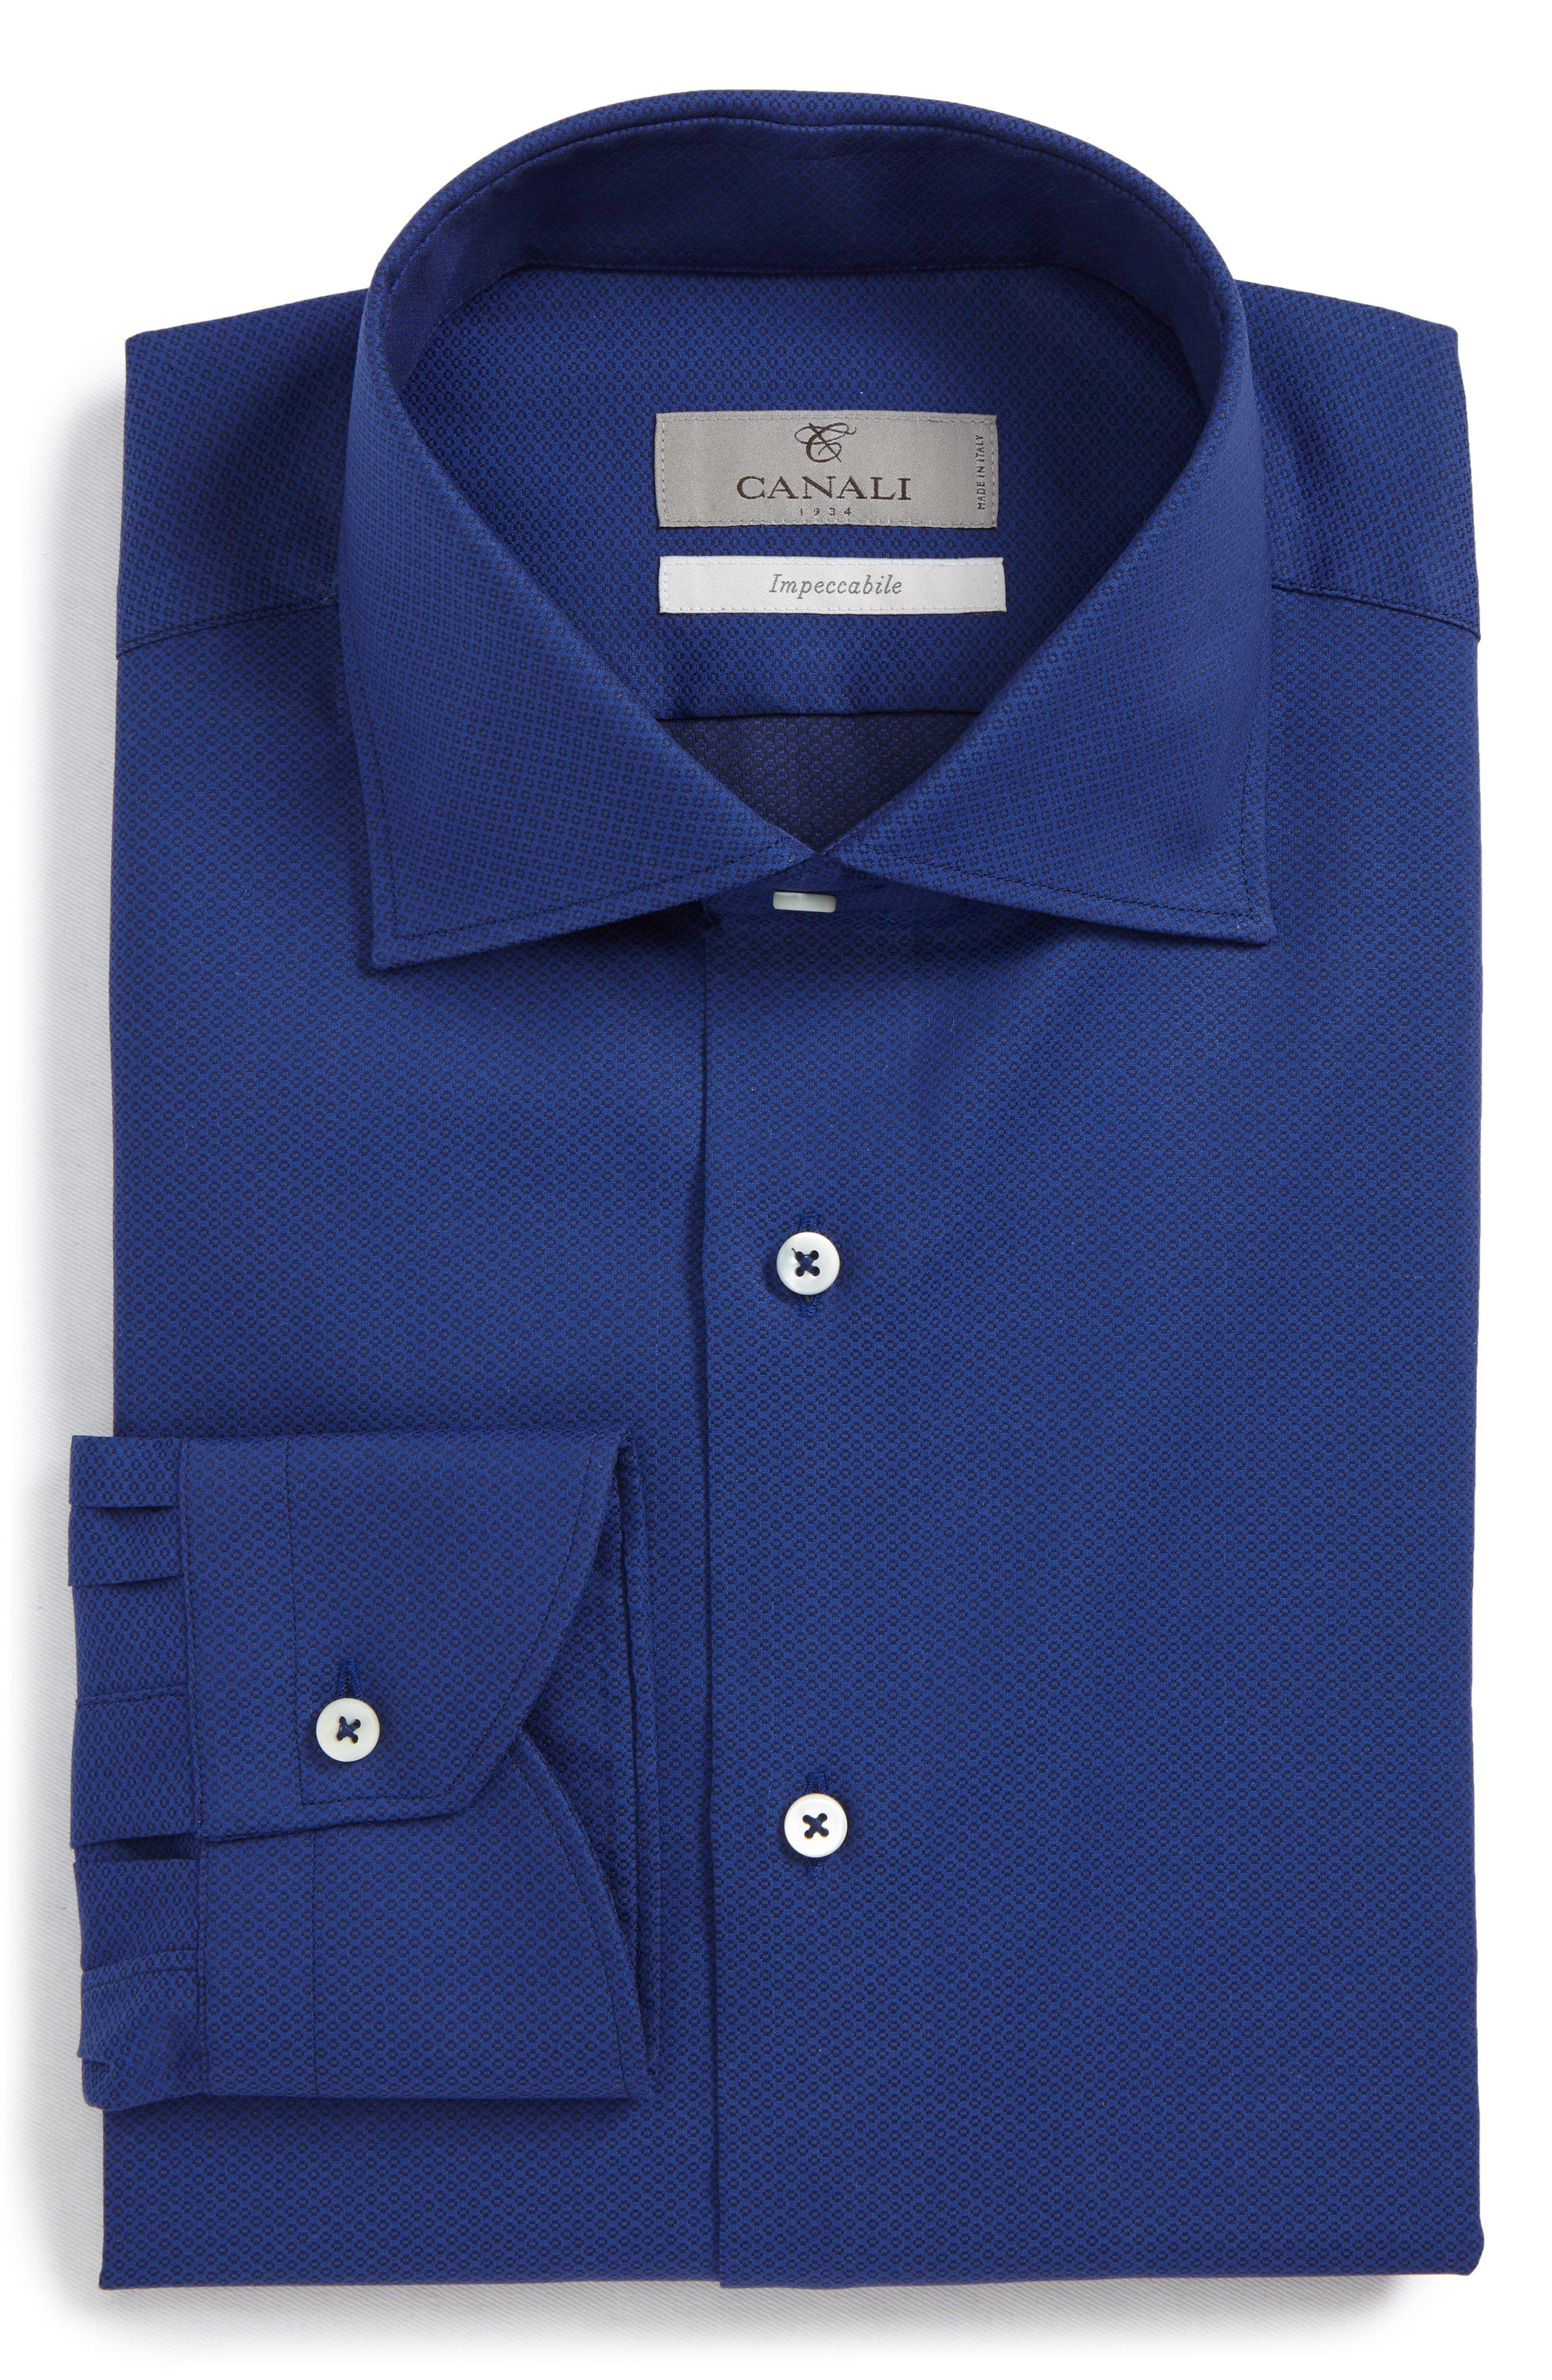 Regular Fit Geometric Dress Shirt,                         Main,                         color,